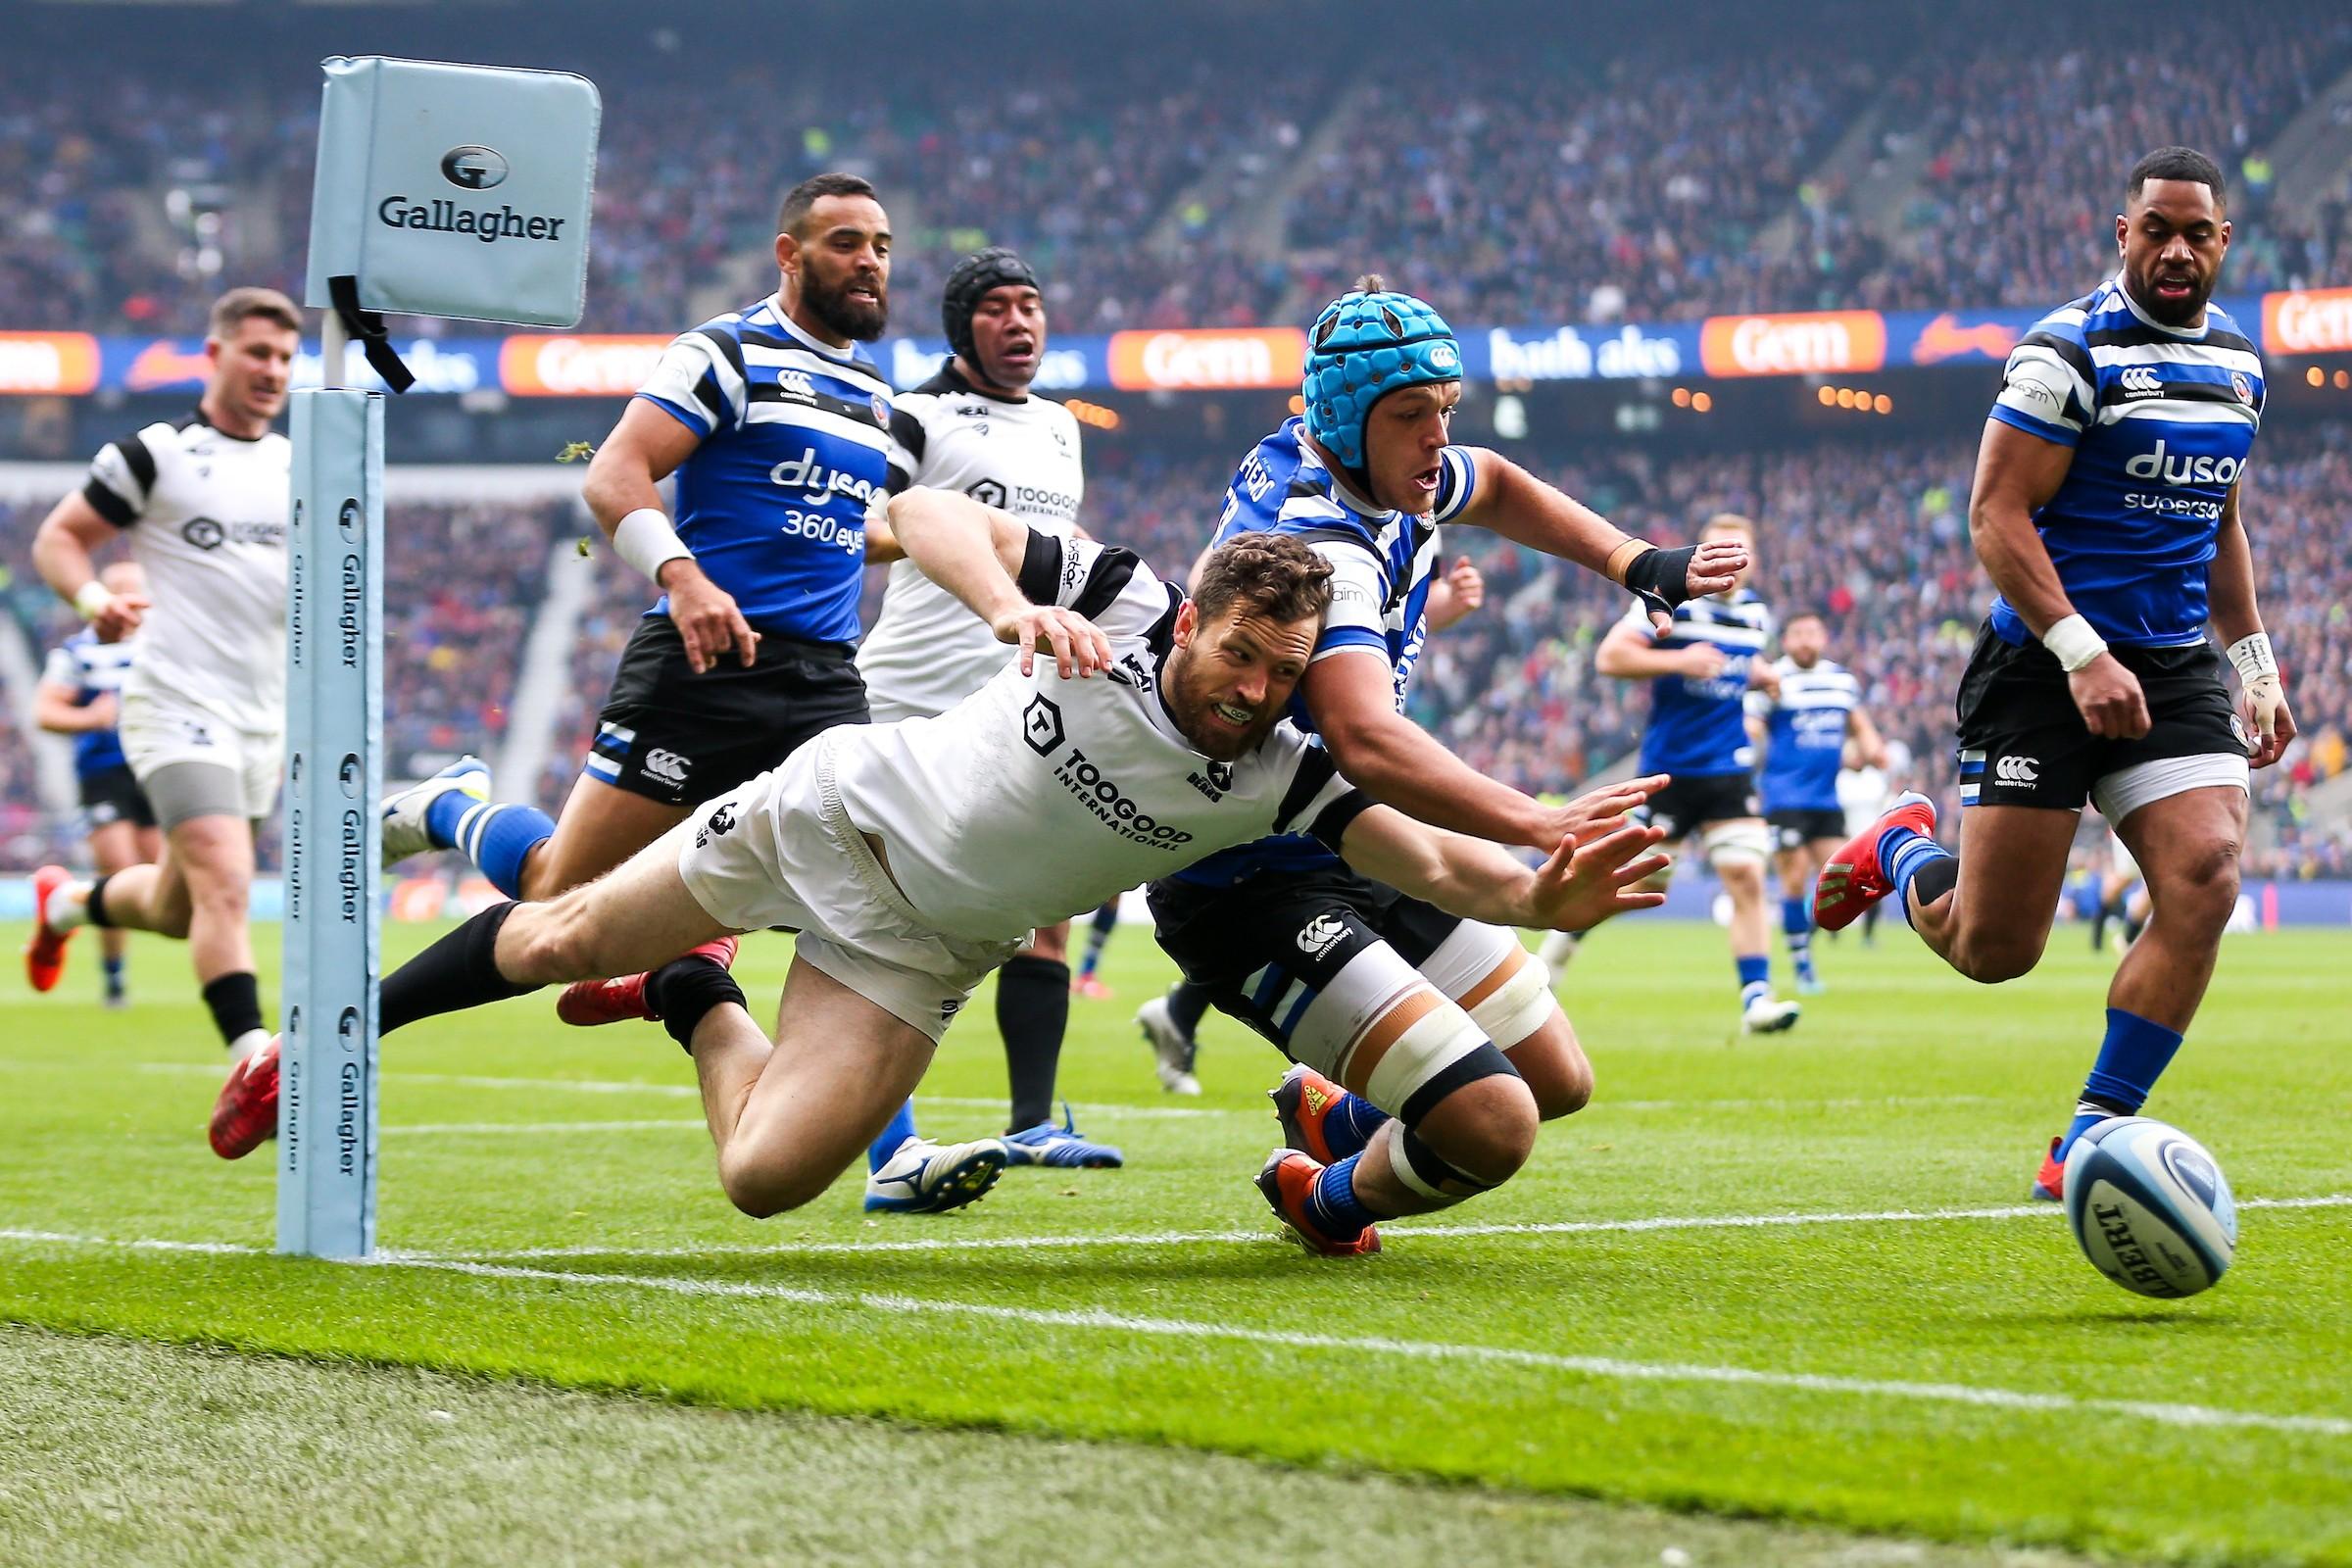 Top ideas to help your rugby team wind down at the end of the season